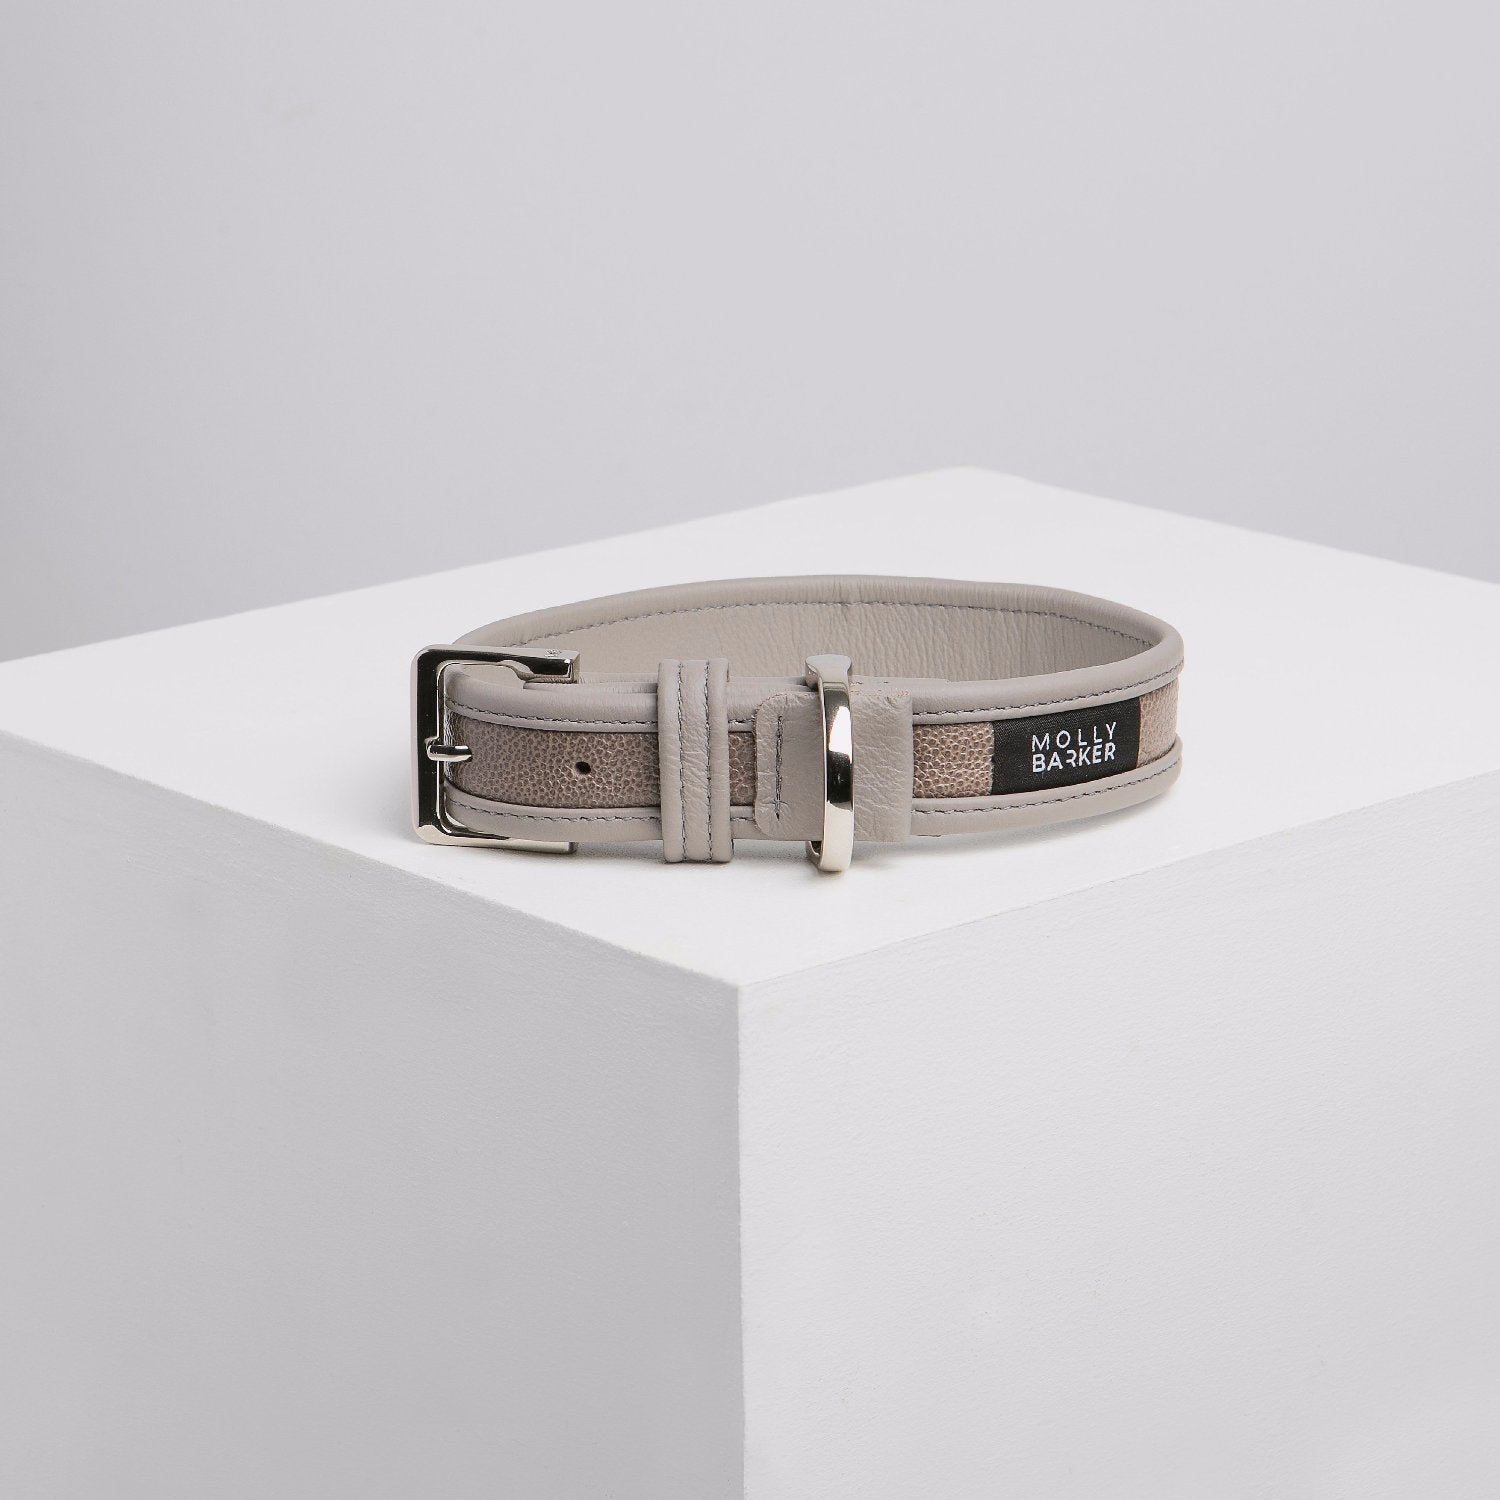 Molly Barker Sasha Leather Dog Collar - Grey